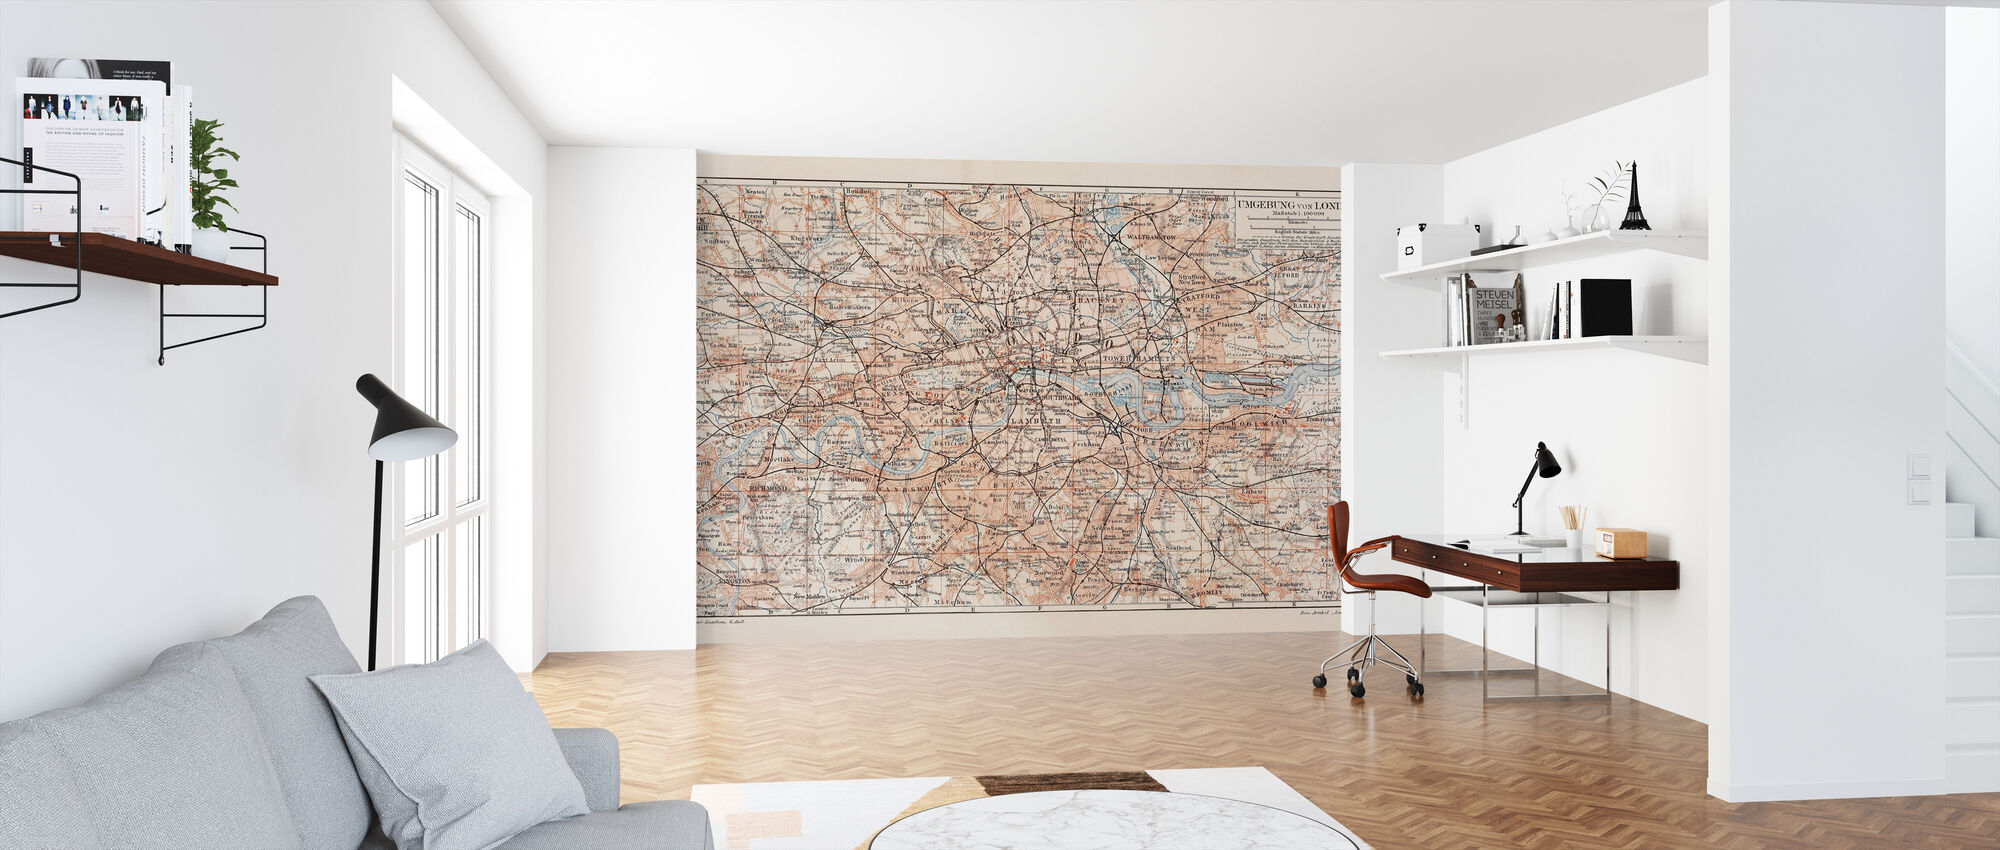 London Map - Wallpaper - Office